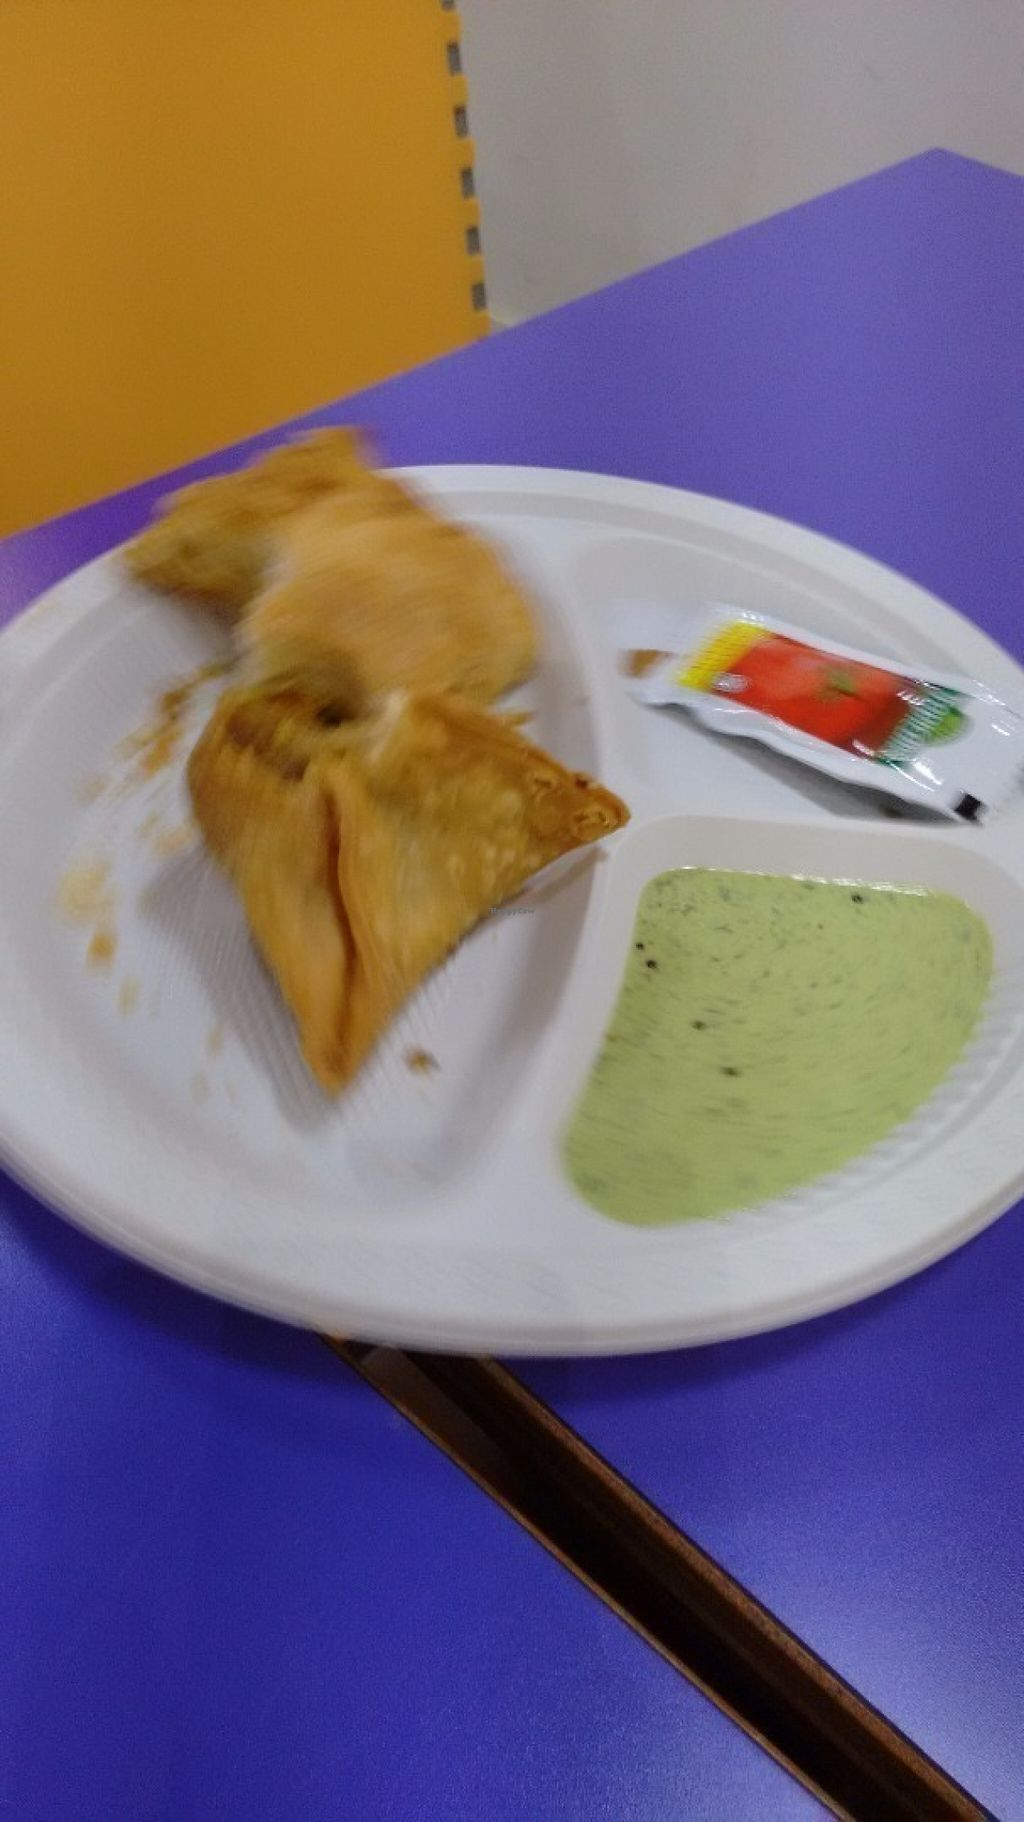 """Photo of Komala's Restaurant - Tanglin Mall  by <a href=""""/members/profile/craigmc"""">craigmc</a> <br/>Samosa and curry puff <br/> July 17, 2016  - <a href='/contact/abuse/image/36273/160460'>Report</a>"""